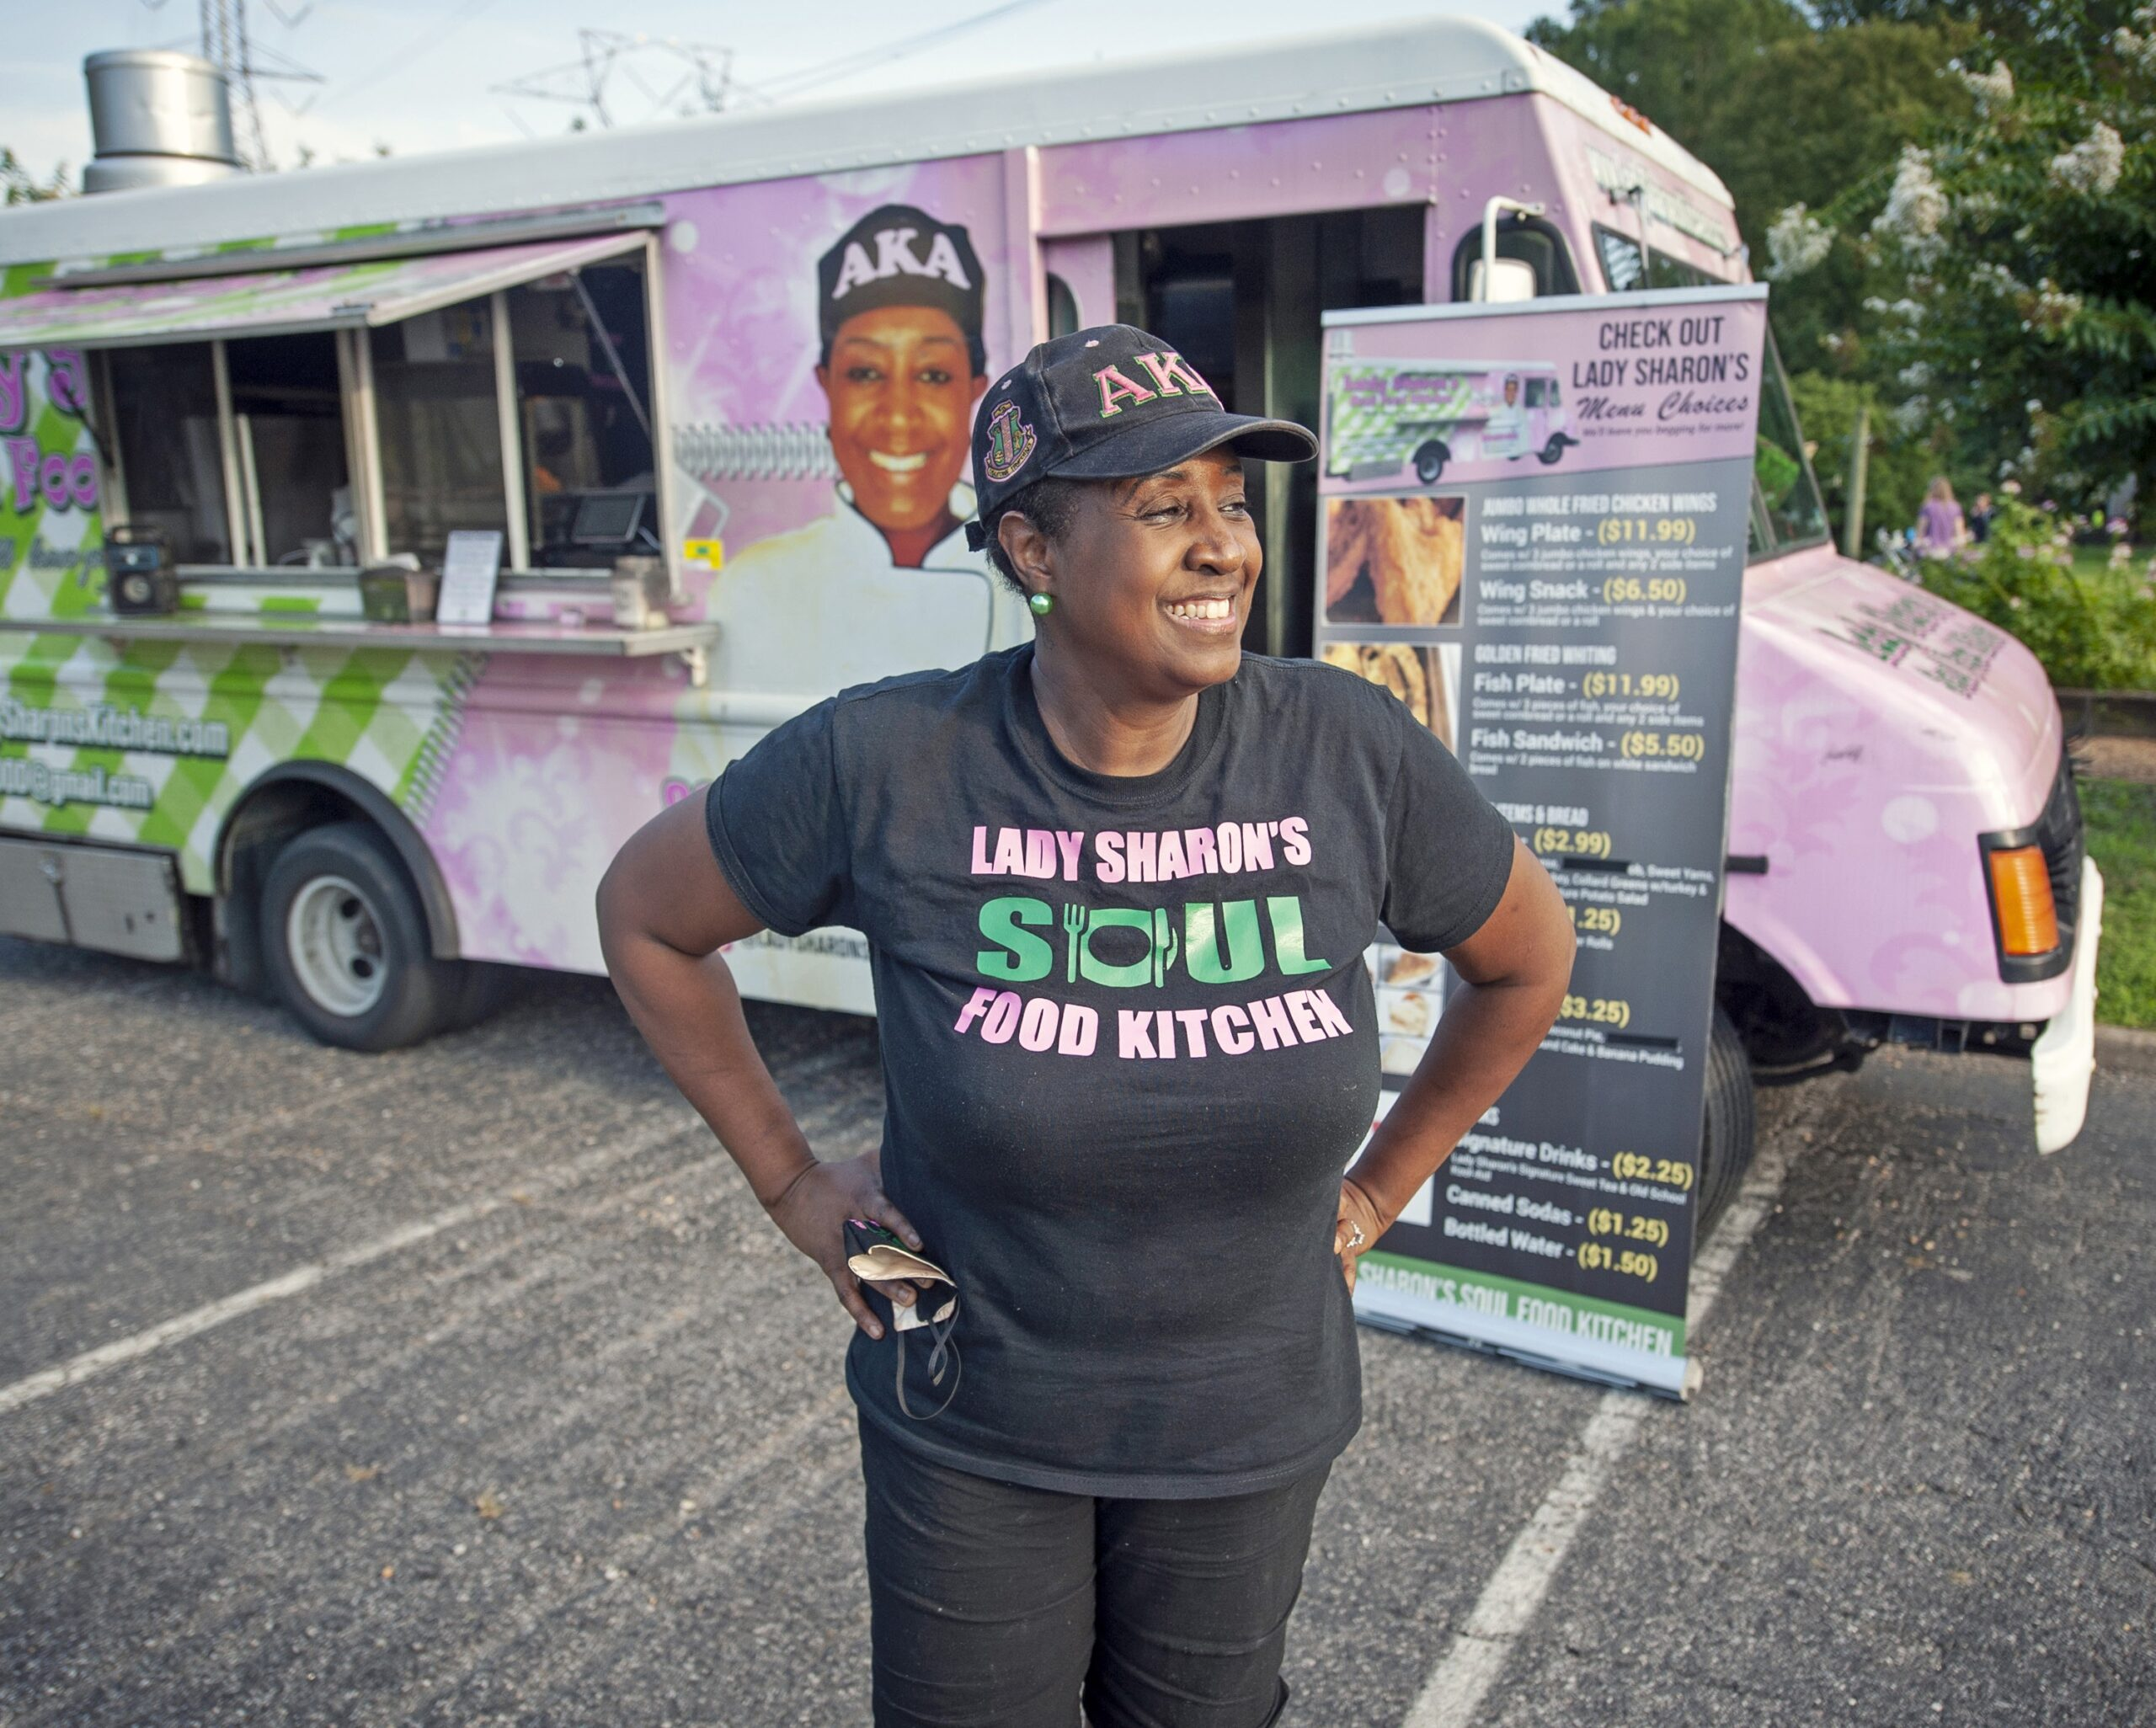 During the pandemic, Sharon Williams, owner of Lady Sharon's Soul Food Kitchen, pivoted to suburban neighborhoods such as Queensmill to keep her food truck business afloat. ASH DANIEL